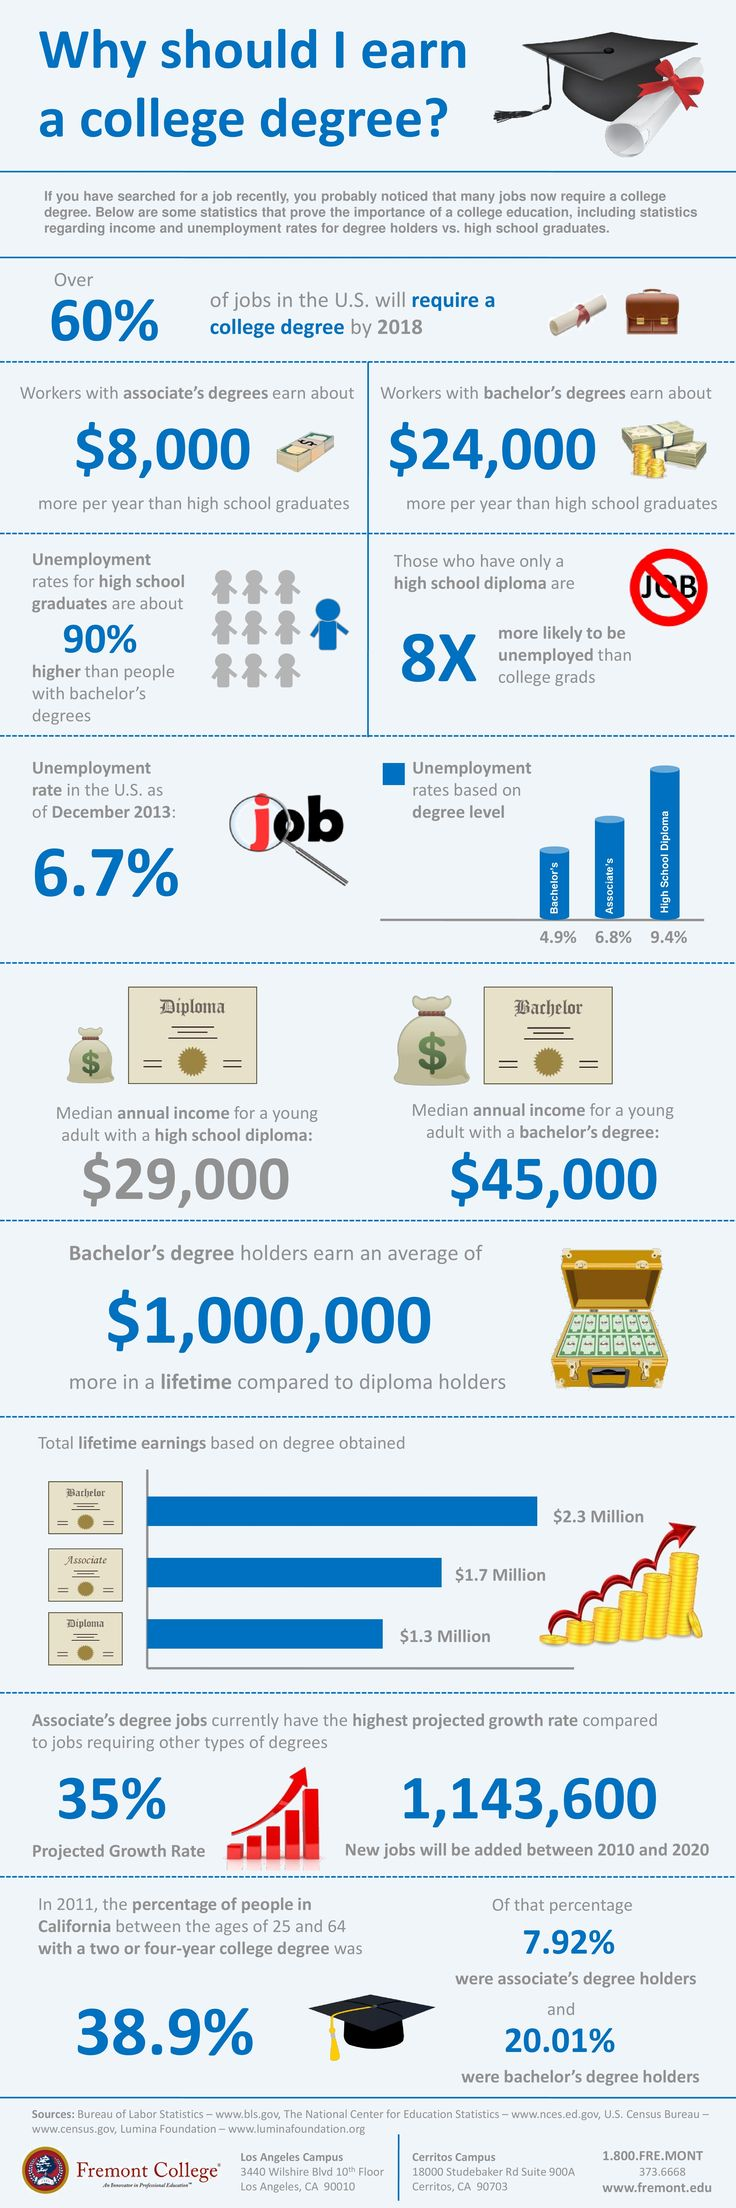 best ideas about college degrees appropriation why should i earn a college degree infographic